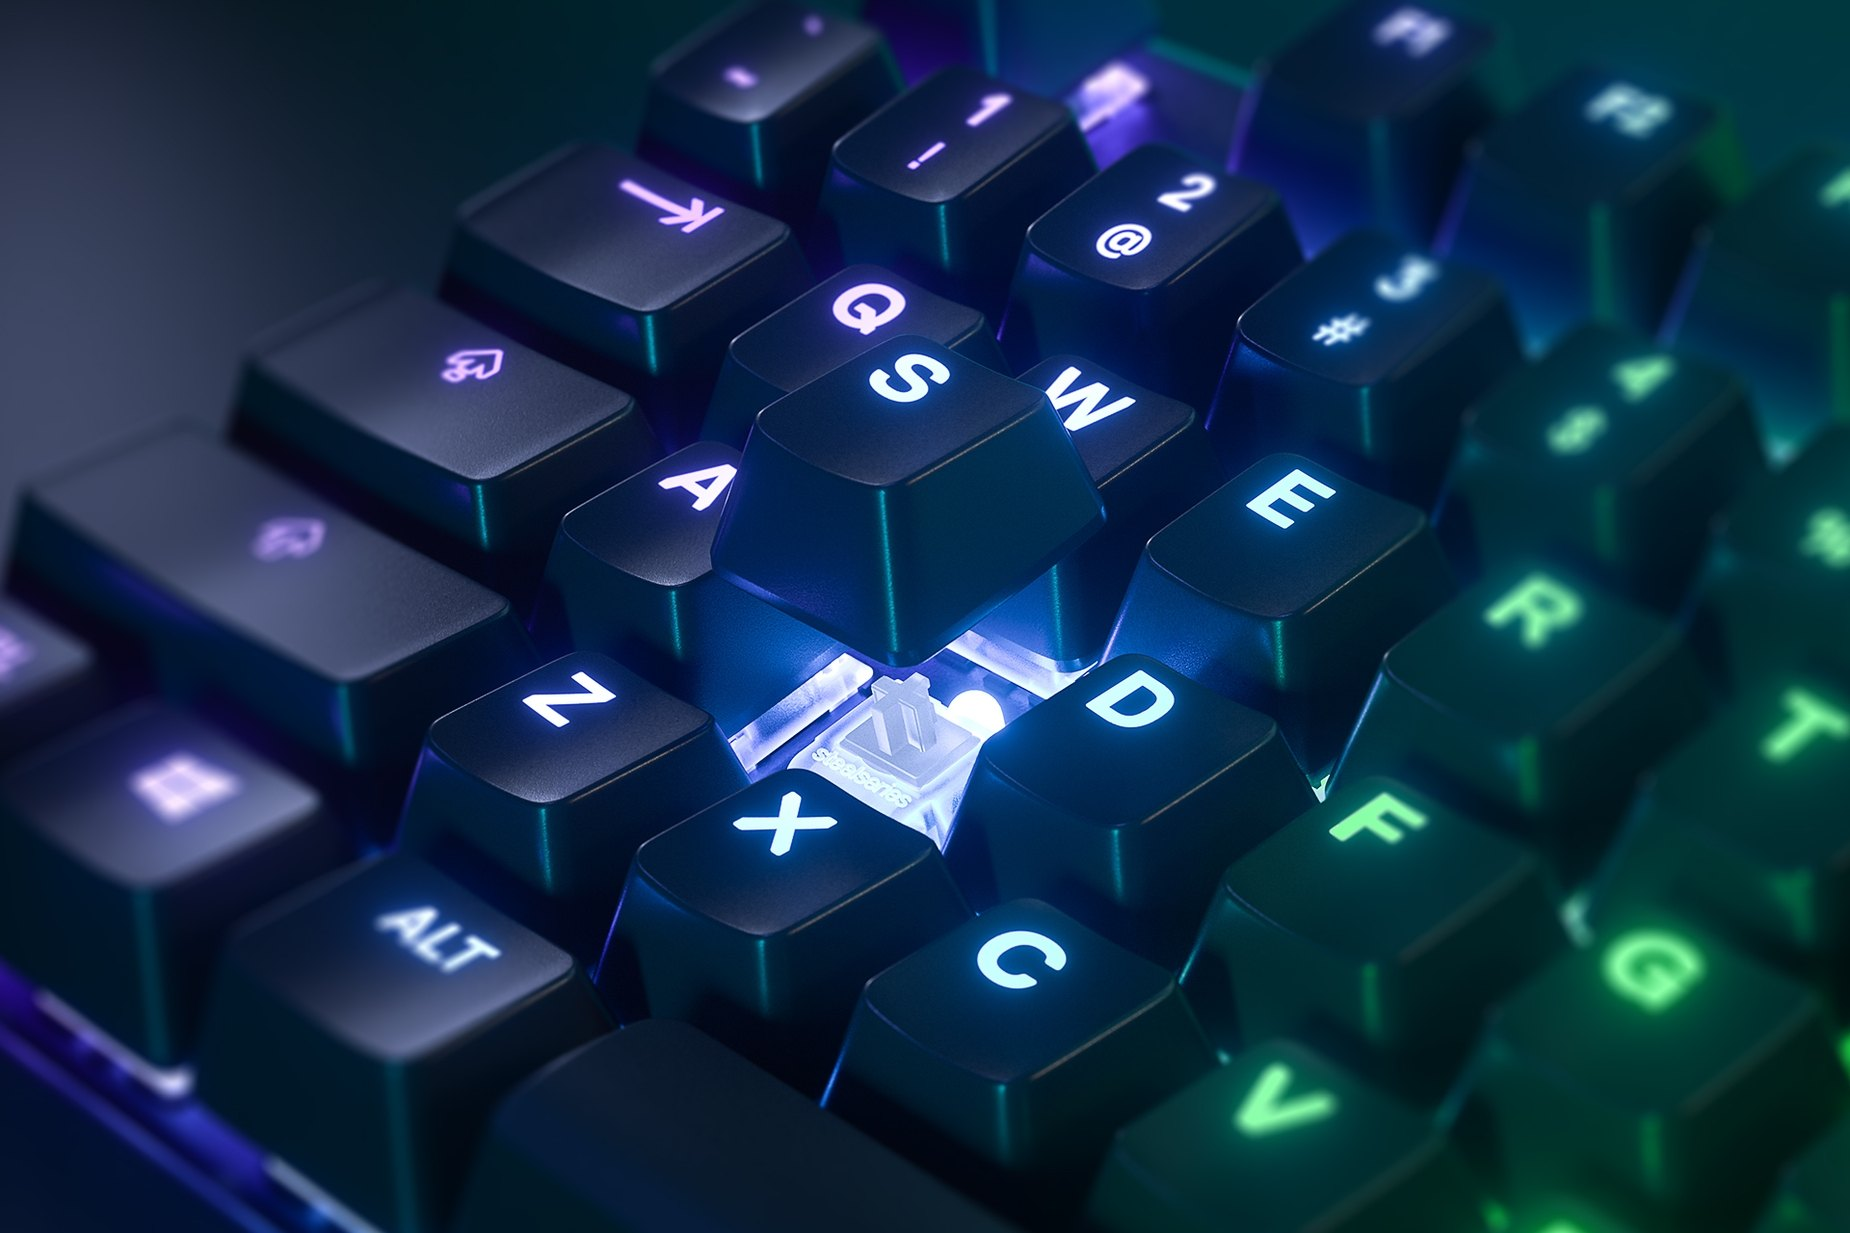 Zoomed in view of a single key on the German - APEX PRO gaming keyboard, the key is raised up to show the SteelSeries OmniPoint Adjustable Mechanical Switch underneath